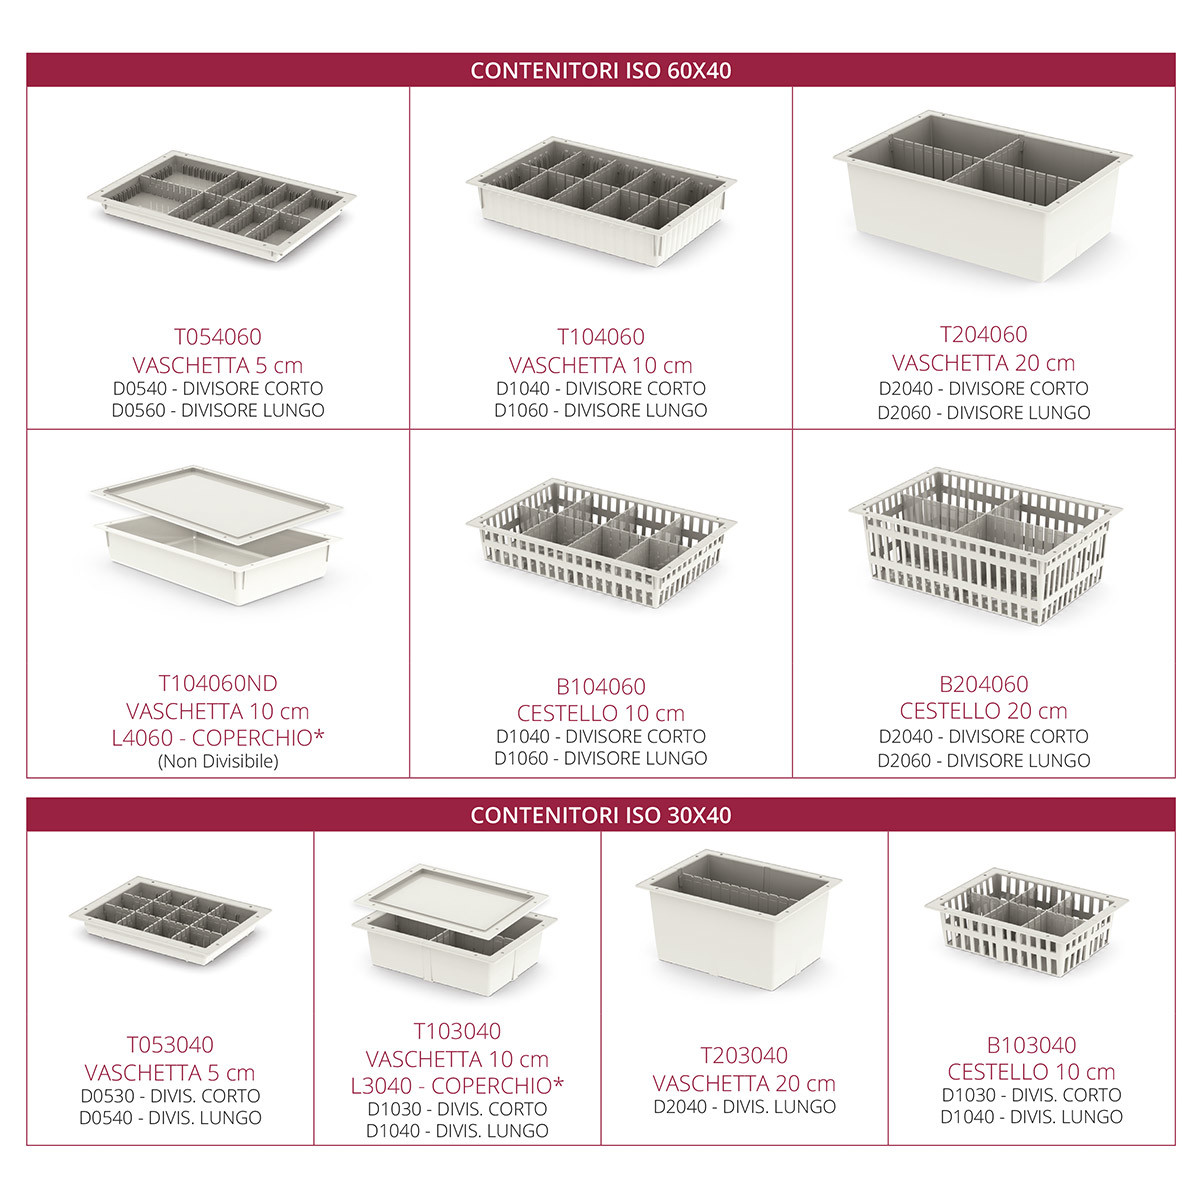 Standard ISO 60-40 ABS modules